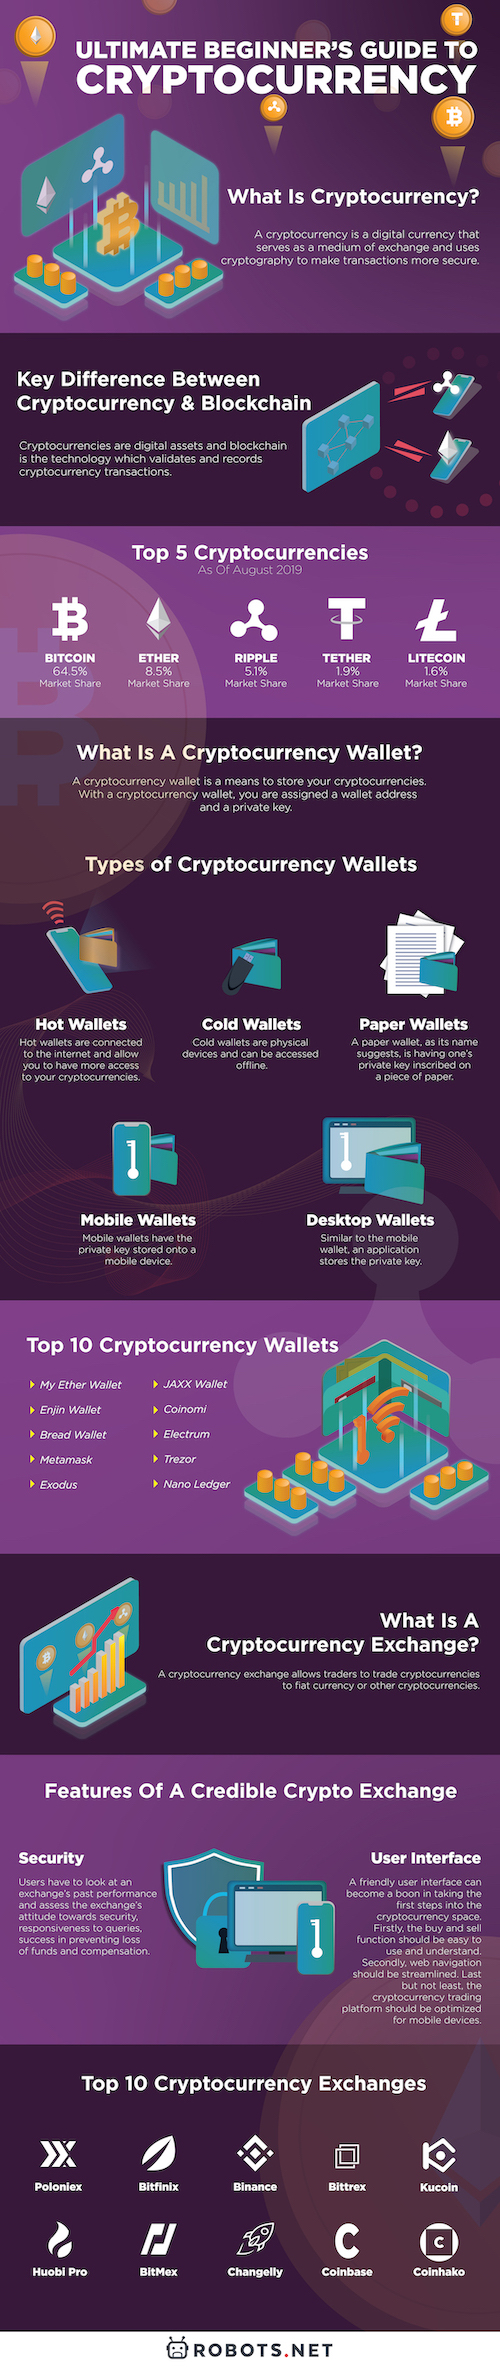 Infographic - Ultimate Cryptocurrency Guide For Beginners